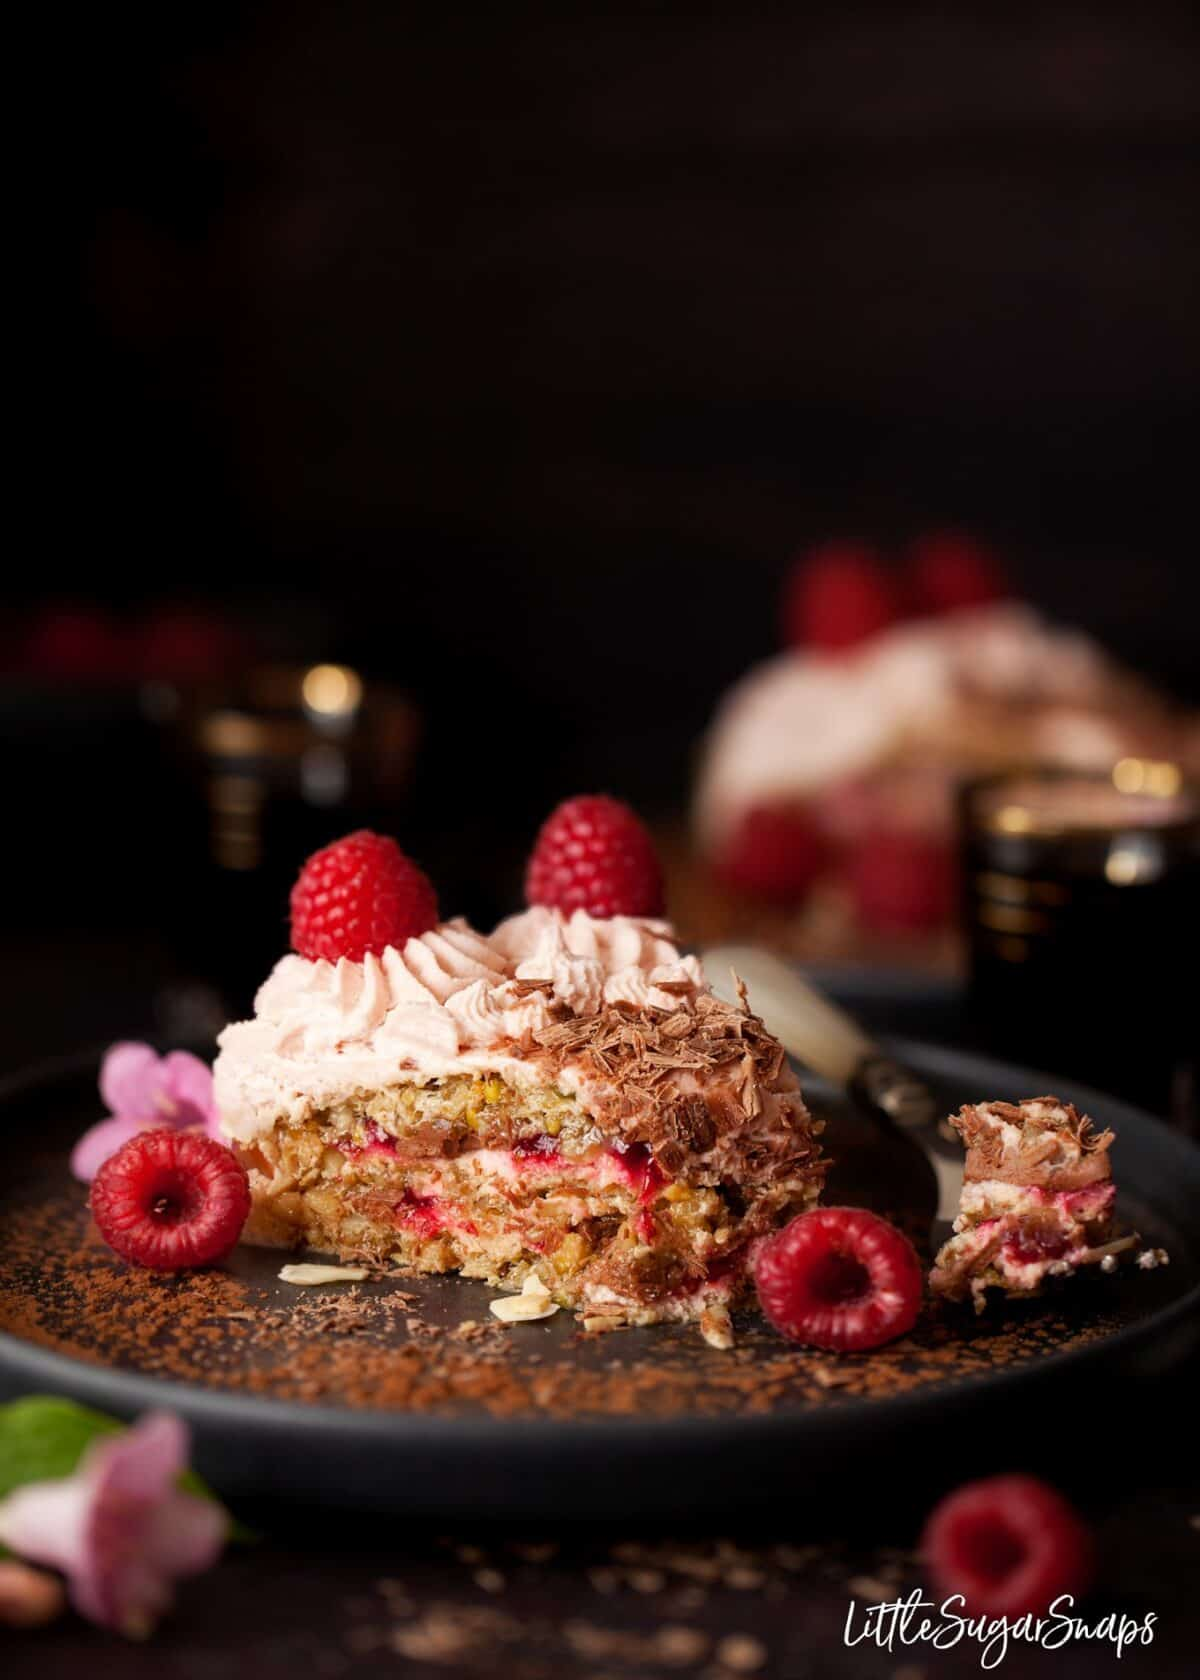 A slice of chocolate raspberry dacquoise cake on a black plate